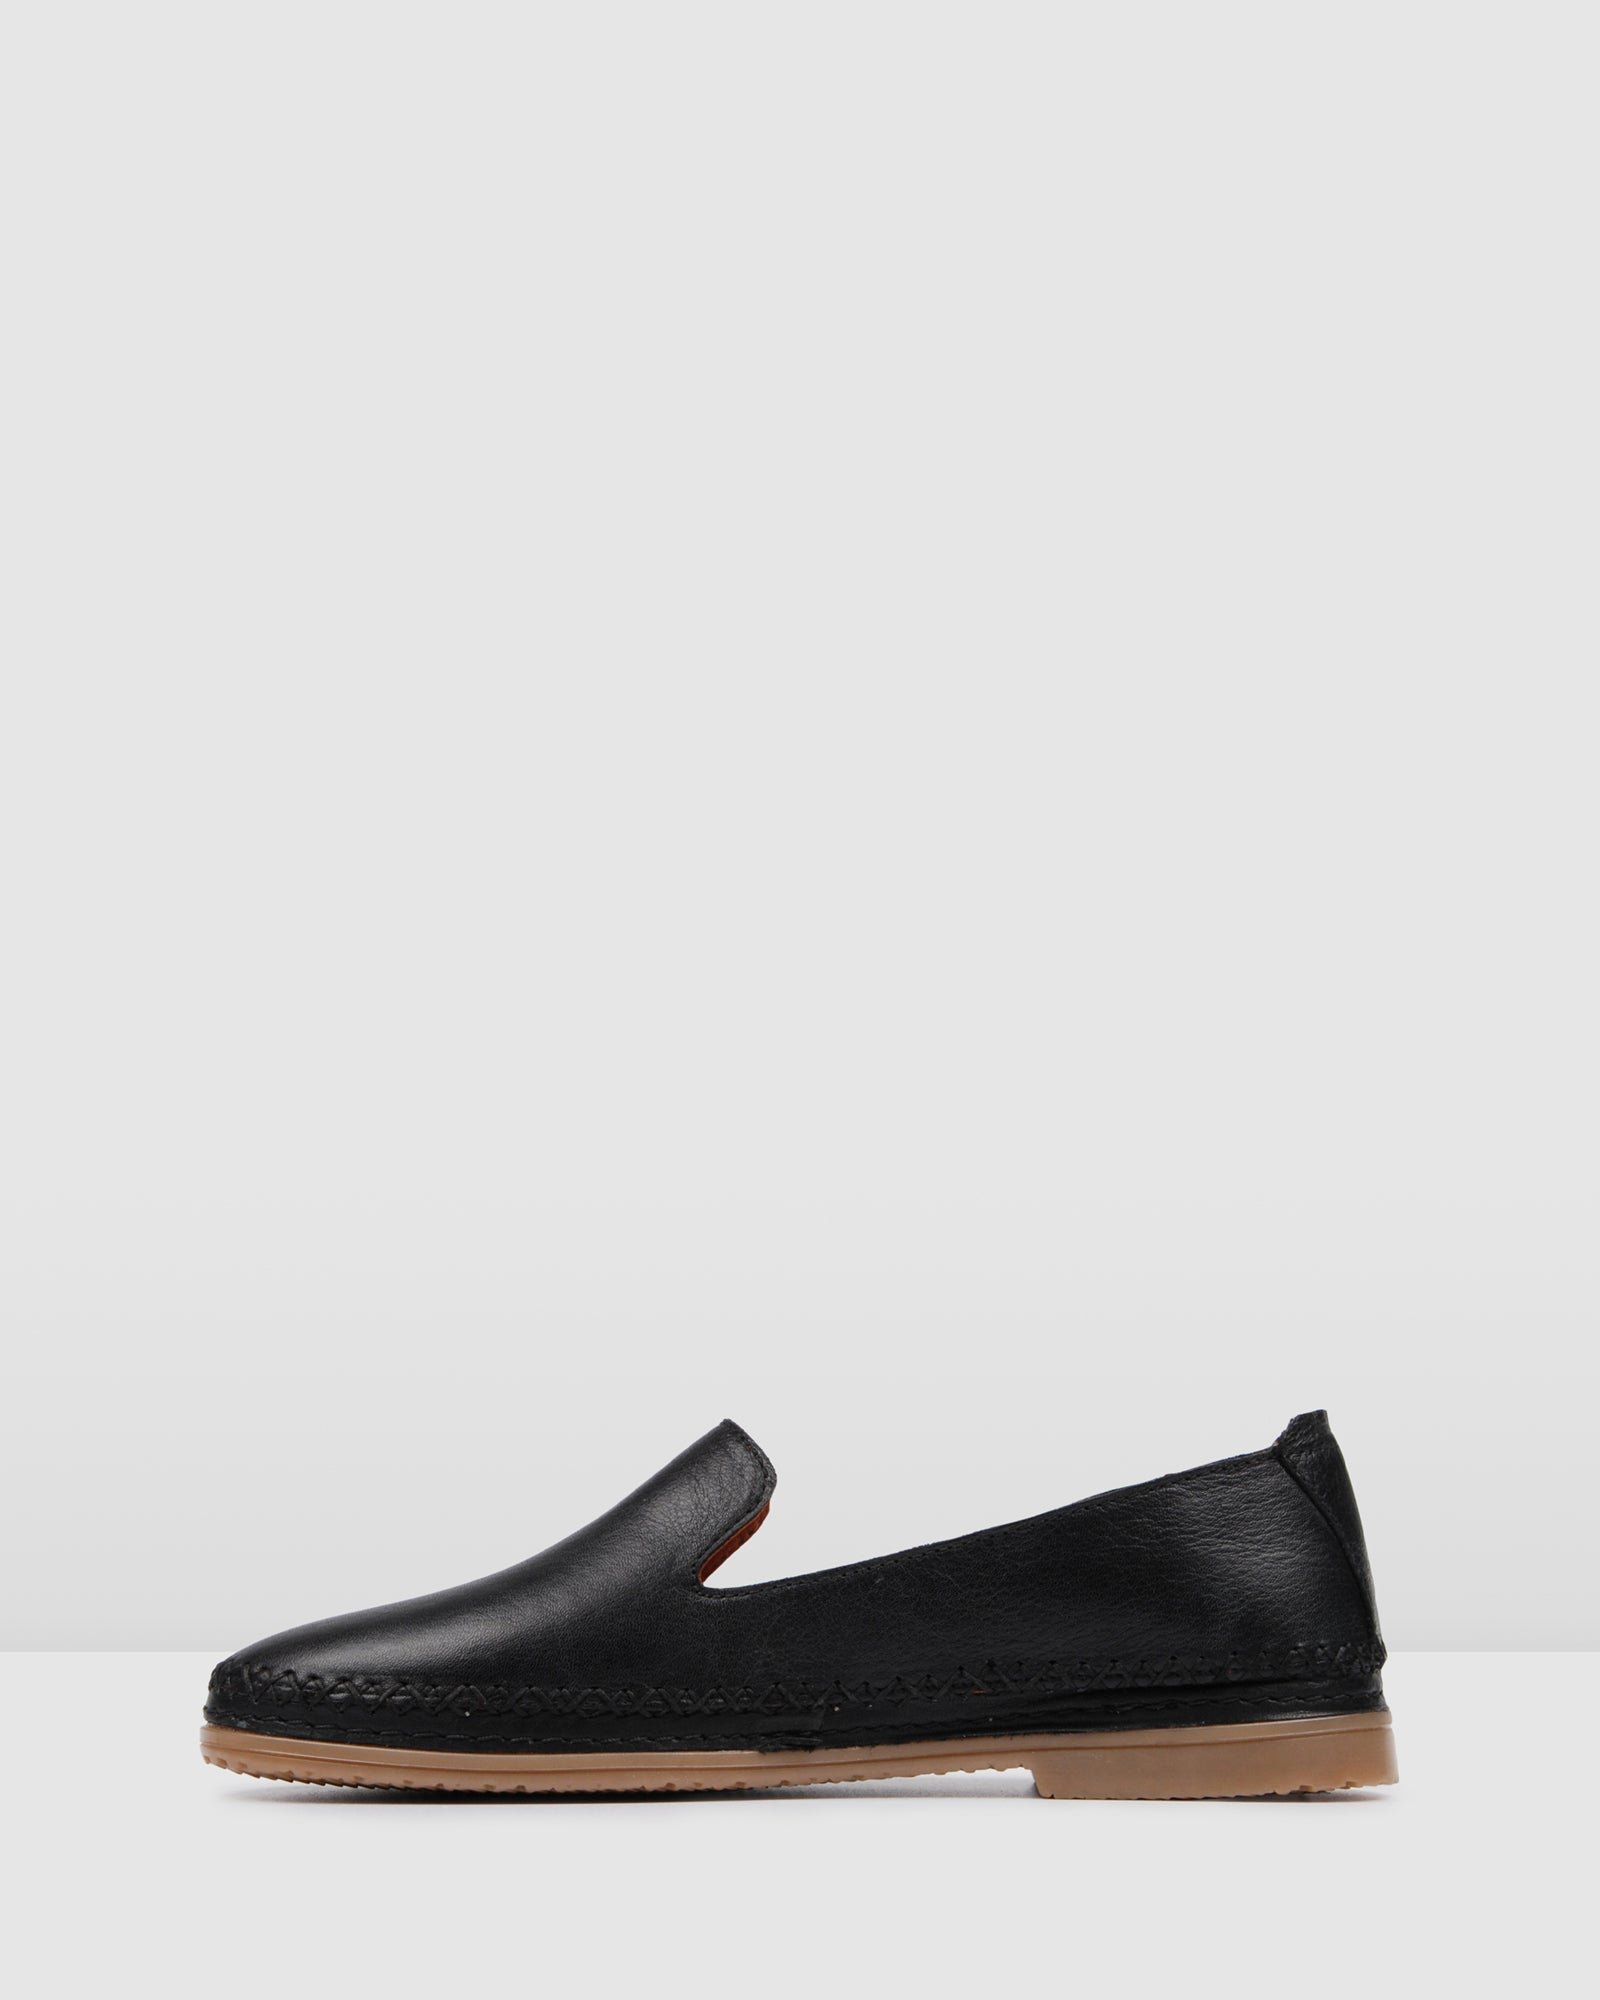 FLEUR CASUAL FLATS BLACK LEATHER